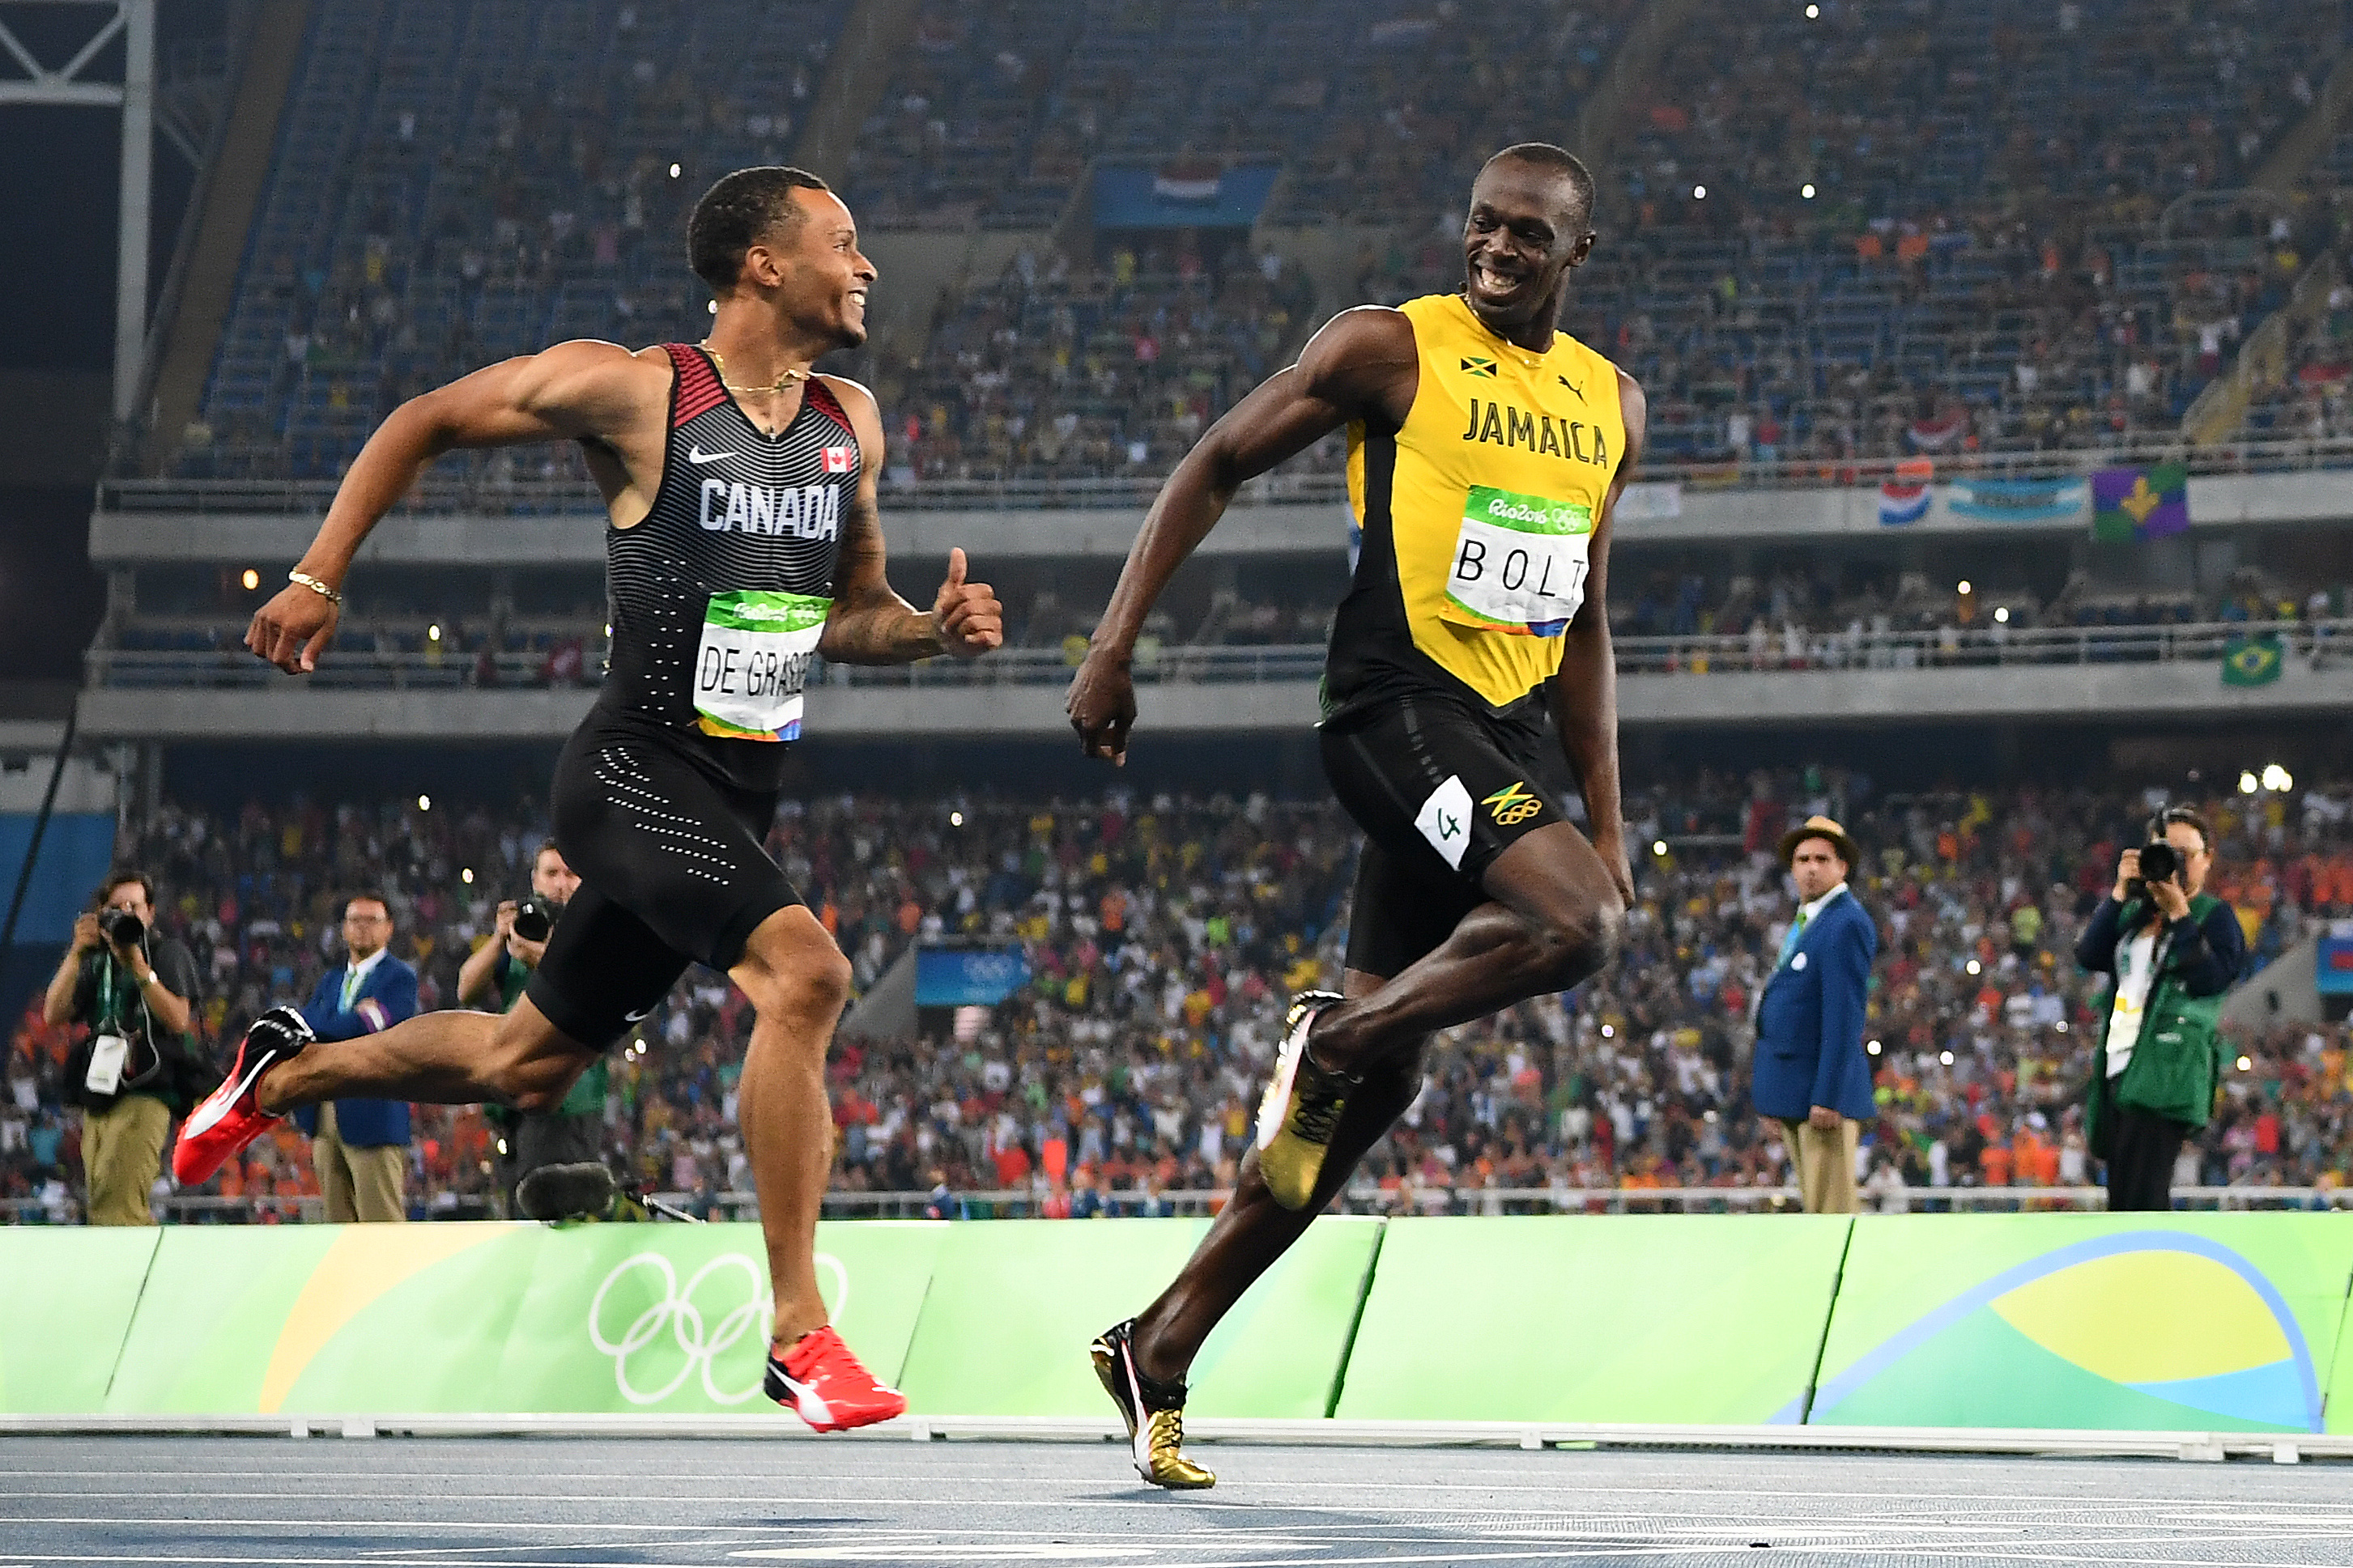 usain bolt shares joke with andre de grass